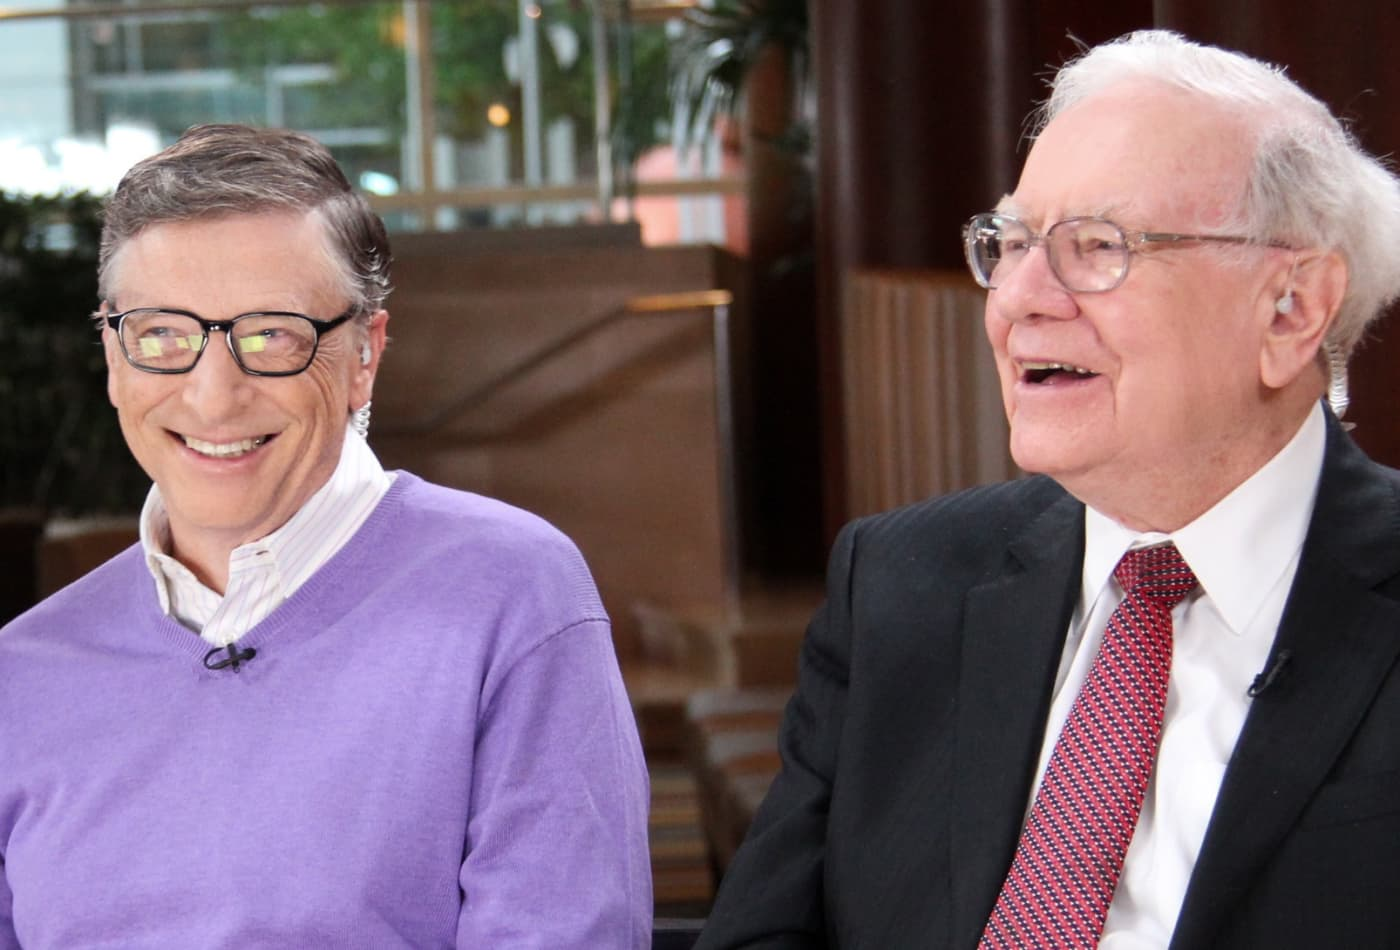 Warren Buffett says he talked to his 'science advisor' Bill Gates about the coronavirus